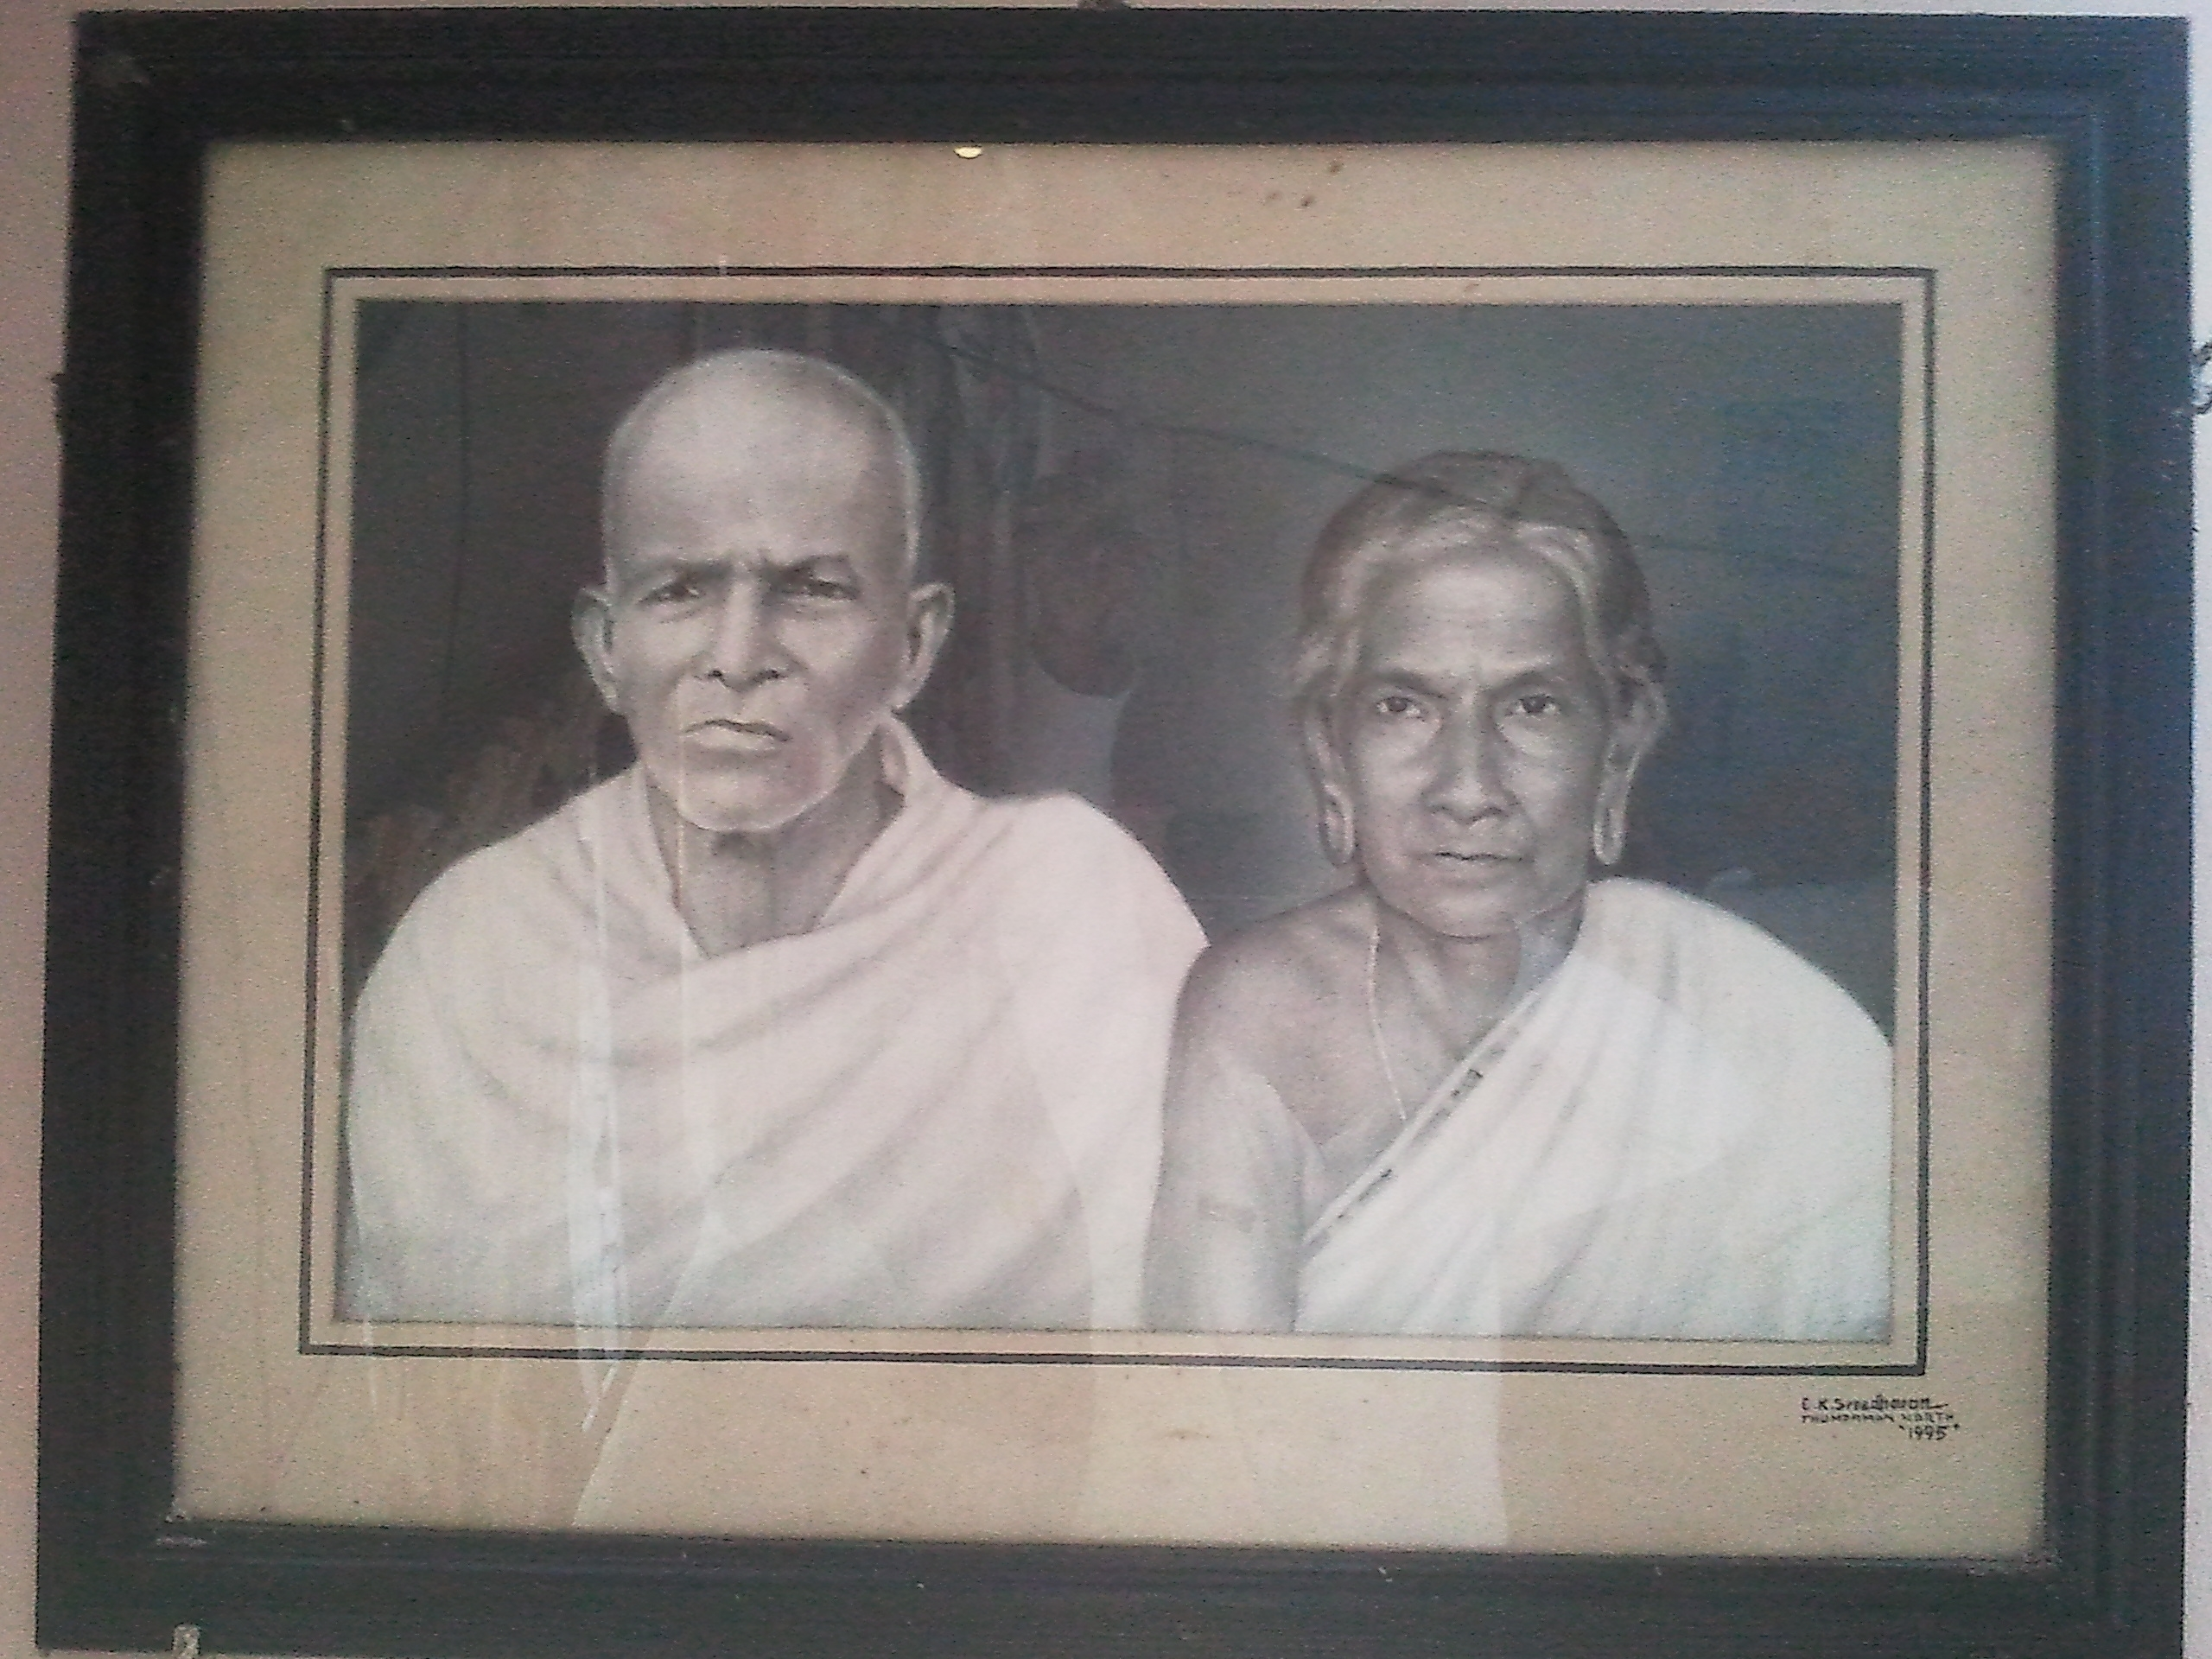 Photo: MY GOD GRANDFATHER & MY GOD GRANDMOTHER (Sri.VelutthaKunju ''Ayathil 'Panicker'& Smt.chakkiAmma ''Ayathil 'Panicker')Our high reputed families was known as''Ayathil 'Panicker' EZHAVA Families' OF AYATHIL FIELDS '(A Honorific hereditary family title affix name bestowed by'' KING His highness Pandalam Varma'' ) our old family was Land Owners & Merchants,                  ',There was a history in ancient times ABOUT OUR FAMILY ,'when KING PANDALAM of ROYAL family  visited our ayathil'fields  in early morning in elavumthitta region.'KING PANDALAM was insulted & teased by our gladiators (Chekavar)owned by my great god grand father's father Sri.Kunju'Krishnan'Ayathil Panicker ,thus the king got very angry , and his nair- ezhava soldiers forcefully took away our gladiators(Chekavar) swords , bows and arrows ,and also forcefully took away the axes of our slaves too, then the king as usual went to nearest fields ,  BUT when the KING returned in evening  to our fields  on the way to his pandalam palace ' he was SHOCKED by seeing My great god grandfather's gladiator(Chekavar) with new GOLDEN  swords , bows ,arrows AND axes of our slaves are all made of GOLD. The king was surprised by the wealth and richness of my great god grandfather & family as landlord  ,and then KING PANDALAM smiled with RESPECT to my great god grandfather and told him these words :''YOUR FATE WILL NEVER CHANGE DESTINY ''and also given him SURNAME as :Sri.KunjuKrishnan'Ayathil'Panicker'EZHAVA Families  (A Honorific hereditary family title affix name bestowed by'' KING His highness Pandalam Varma'' of royal family)